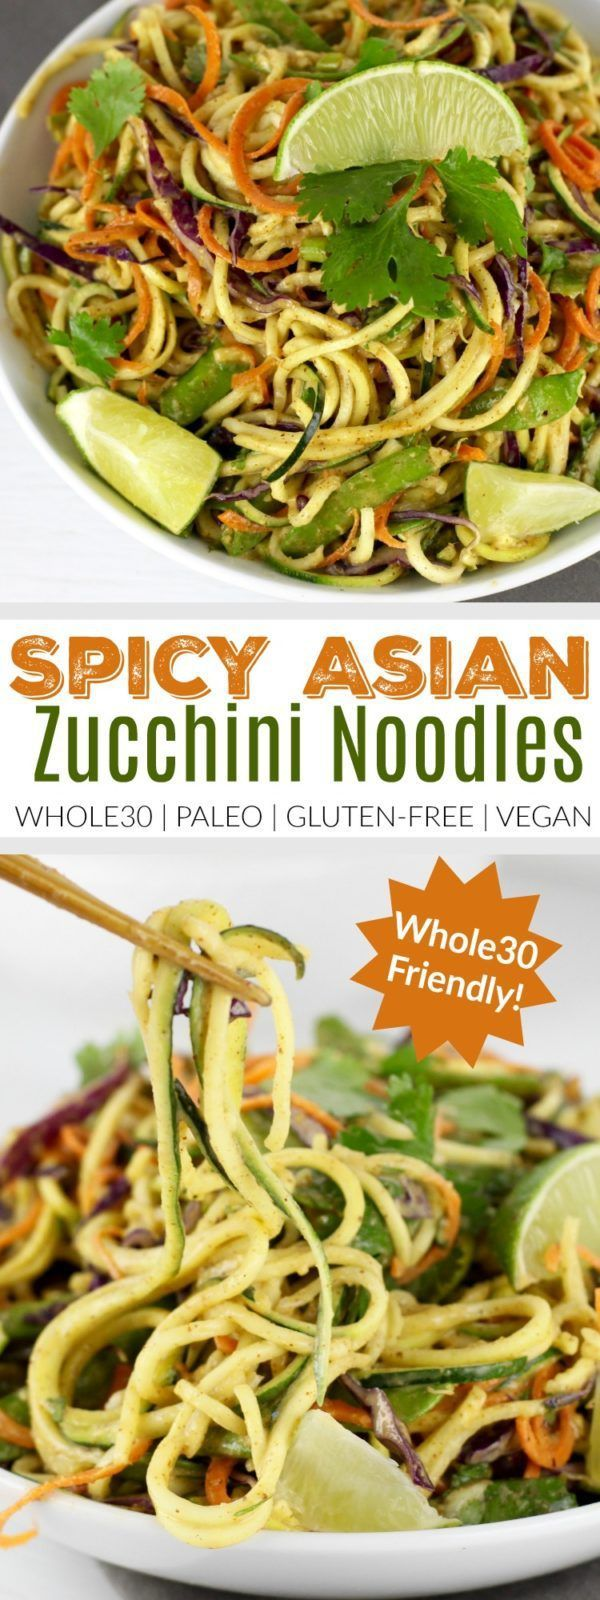 Spicy Asian Zucchini Noodles   zucchini noodle recipes   how to make zucchini noodles   healthy dinner recipes   healthy asian inspired dishes   Whole30 approved recipes   Whole30 dinner recipes   Whole30 meal ideas   paleo dinner recipes   gluten free dinner recipes   vegan dinner recipes    The Real Food Dietitians